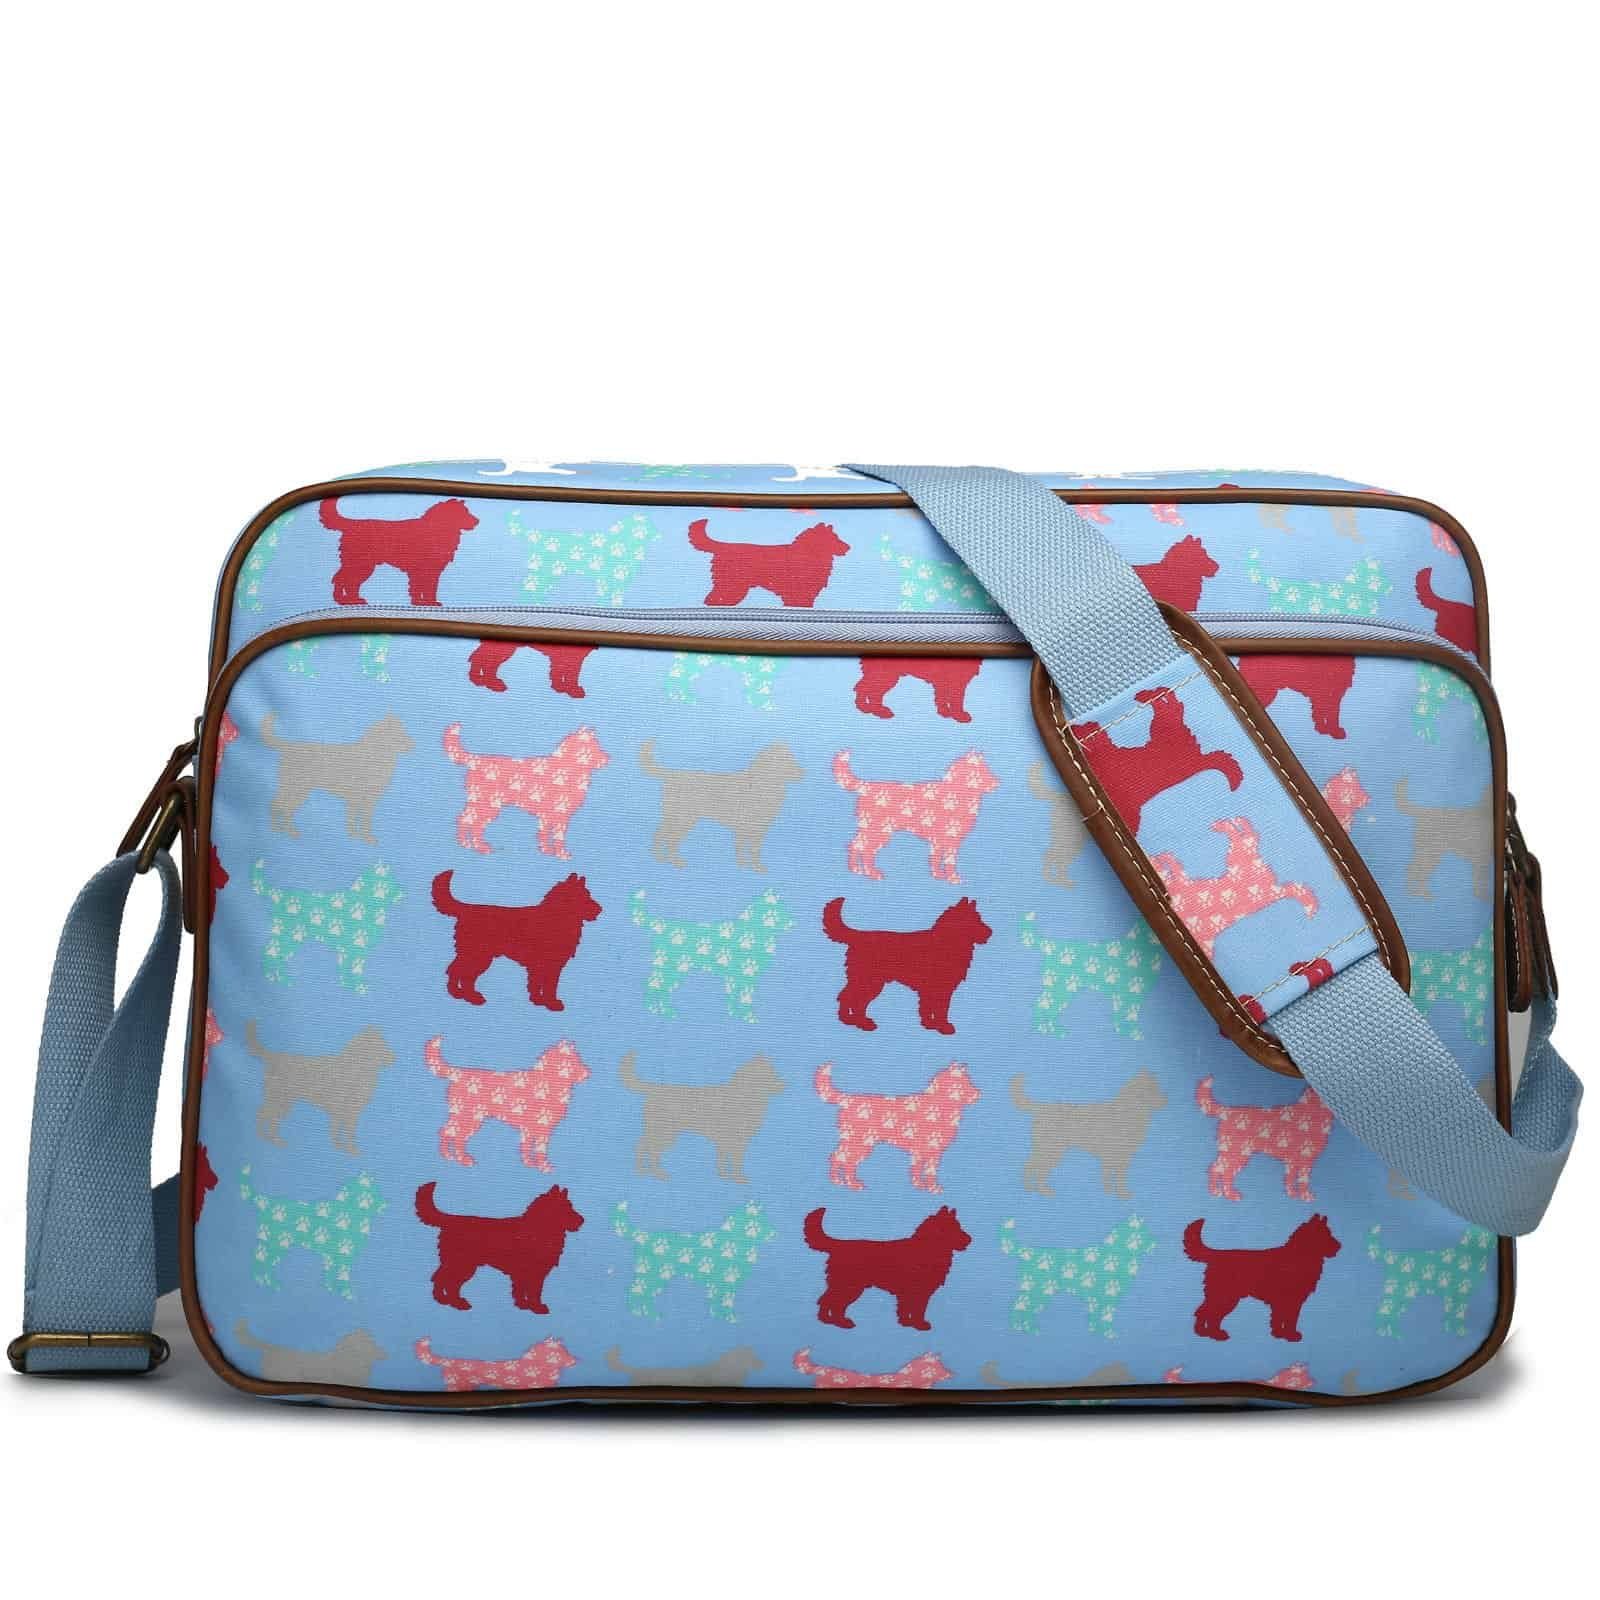 Matte Oilcloth Dog/Cat Printed Satchel Messenger Cross Body Shoulder Bag